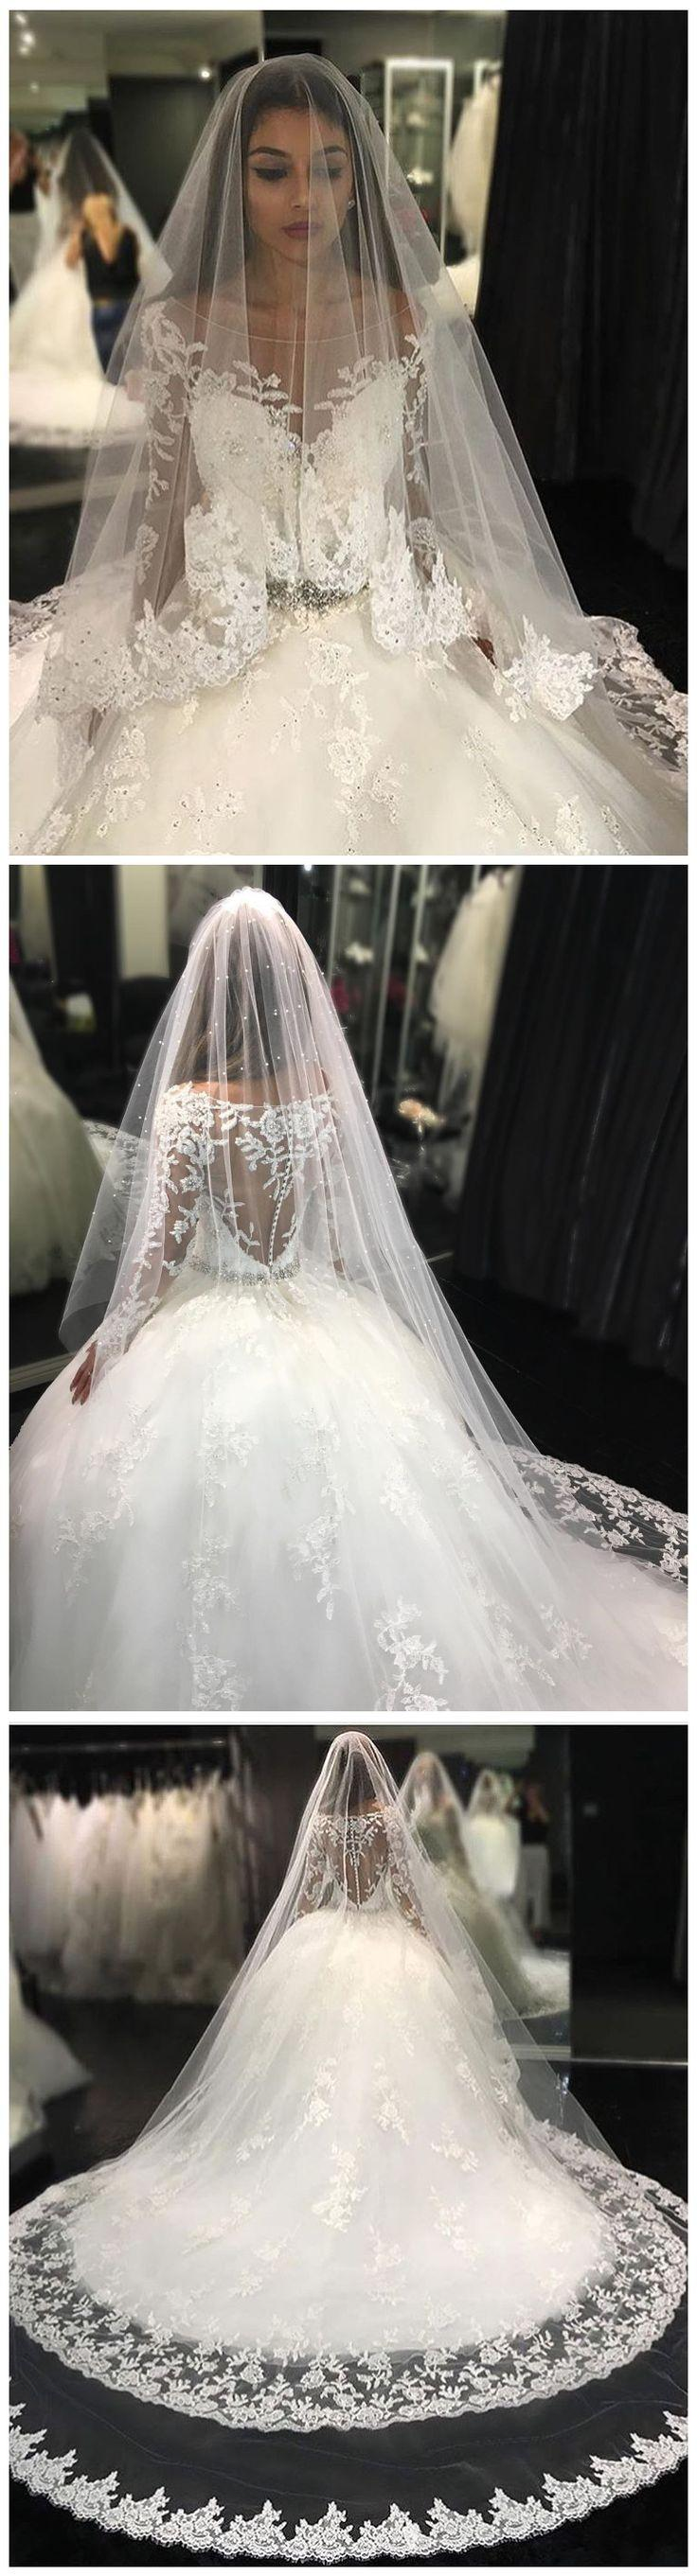 زفاف - Wedding Dresses, Wedding Gown Sexy